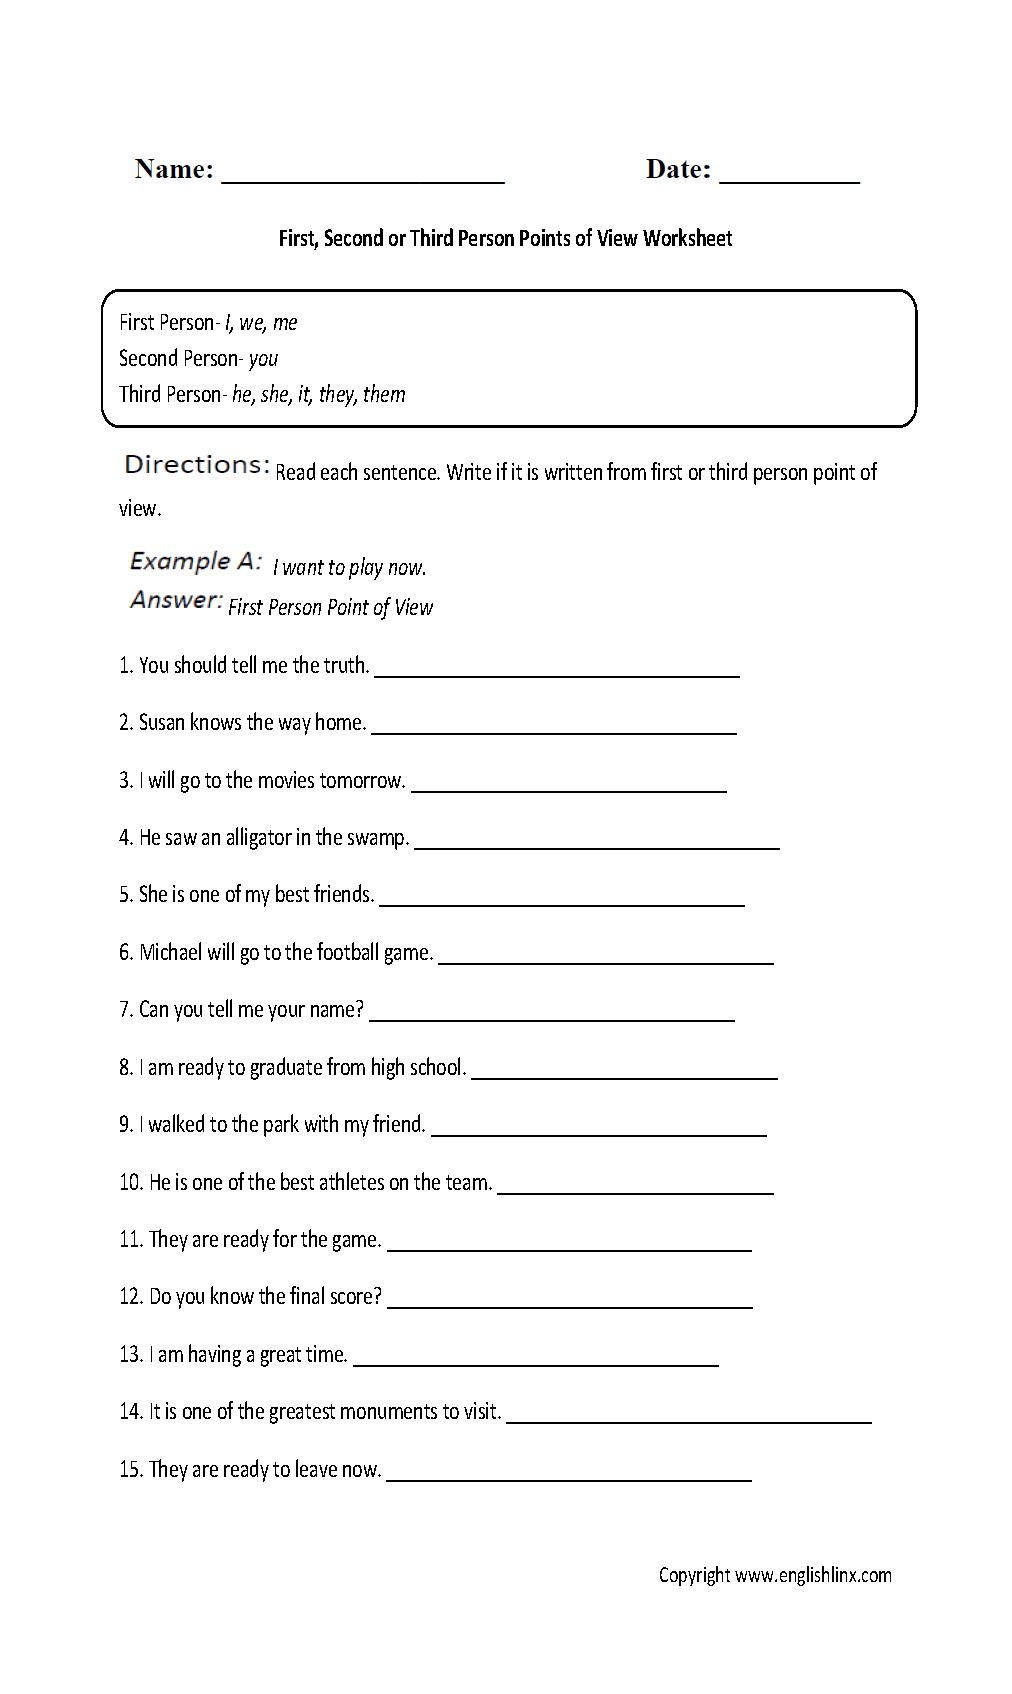 Proatmealus  Unusual Englishlinxcom  Point Of View Worksheets With Outstanding Point Of View Worksheet With Beauteous Worksheets For Self Esteem Also Act English Prep Worksheets In Addition Division Worksheets For Th Graders And Pronoun Worksheets For Th Grade As Well As Homework Worksheets For Rd Grade Additionally Moon Calendar Worksheet From Englishlinxcom With Proatmealus  Outstanding Englishlinxcom  Point Of View Worksheets With Beauteous Point Of View Worksheet And Unusual Worksheets For Self Esteem Also Act English Prep Worksheets In Addition Division Worksheets For Th Graders From Englishlinxcom